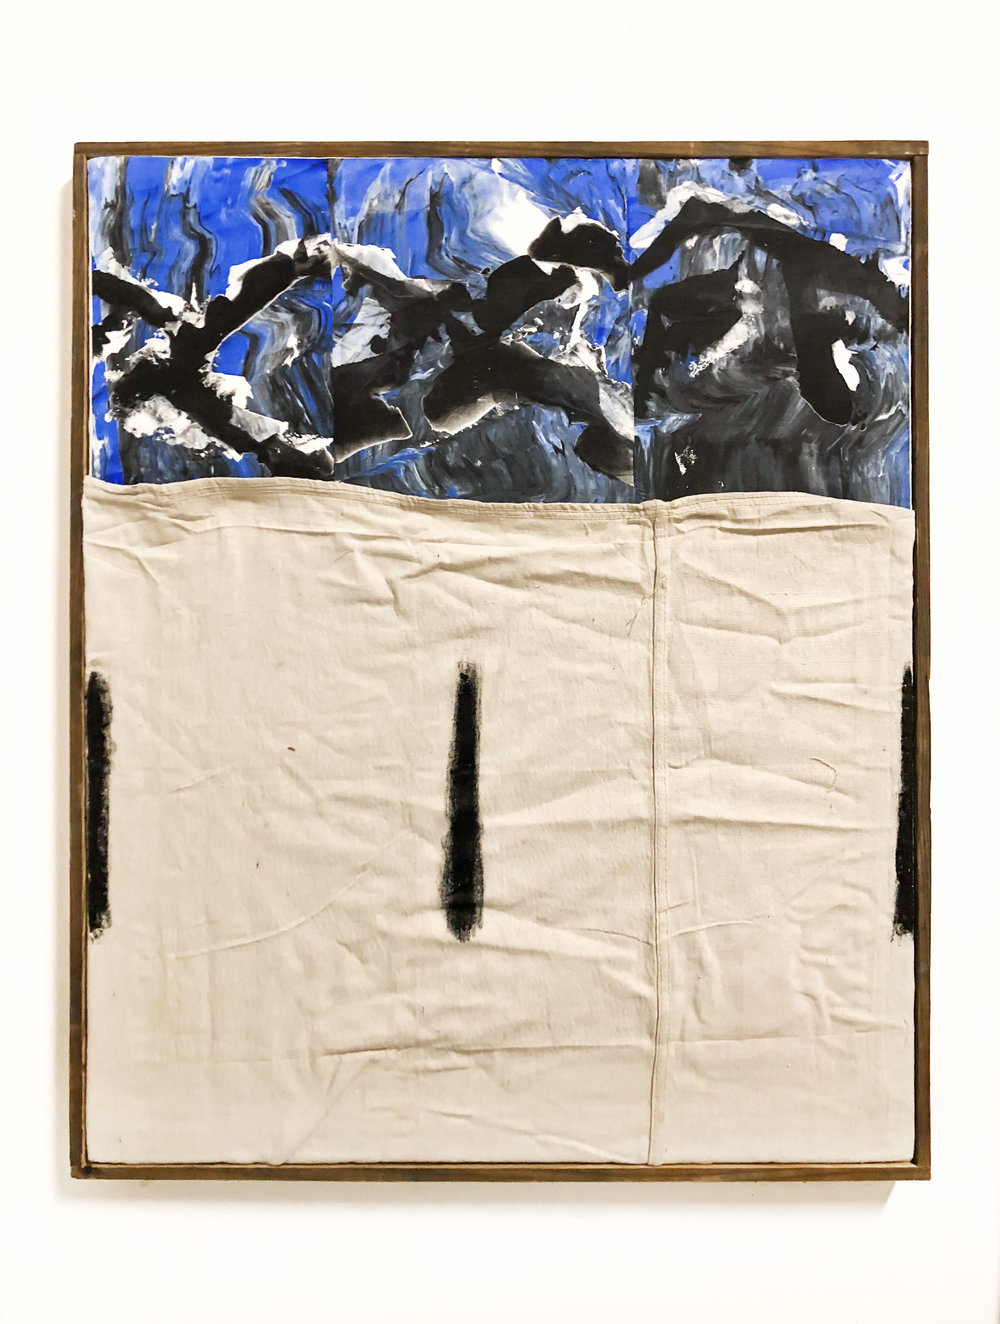 "SHIV'AH5 (שבעה), gesso, oil stick and ink with sand from the West Bank and Israel on linen and microsuede. Stretched on silkscreen frame 36"" x 30"", 2017"